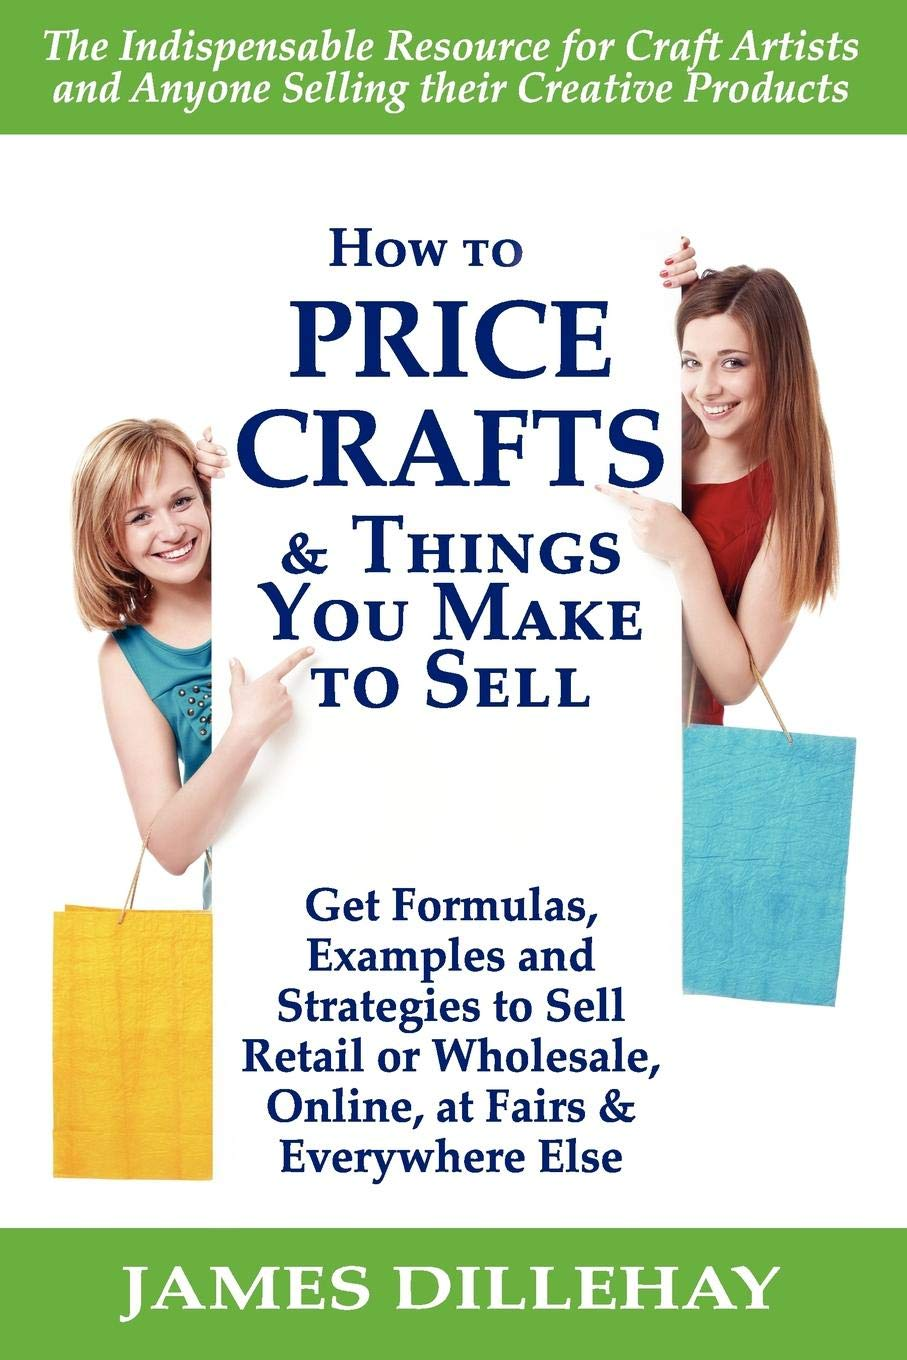 How To Price Crafts And Things You Make To Sell James Dillehay